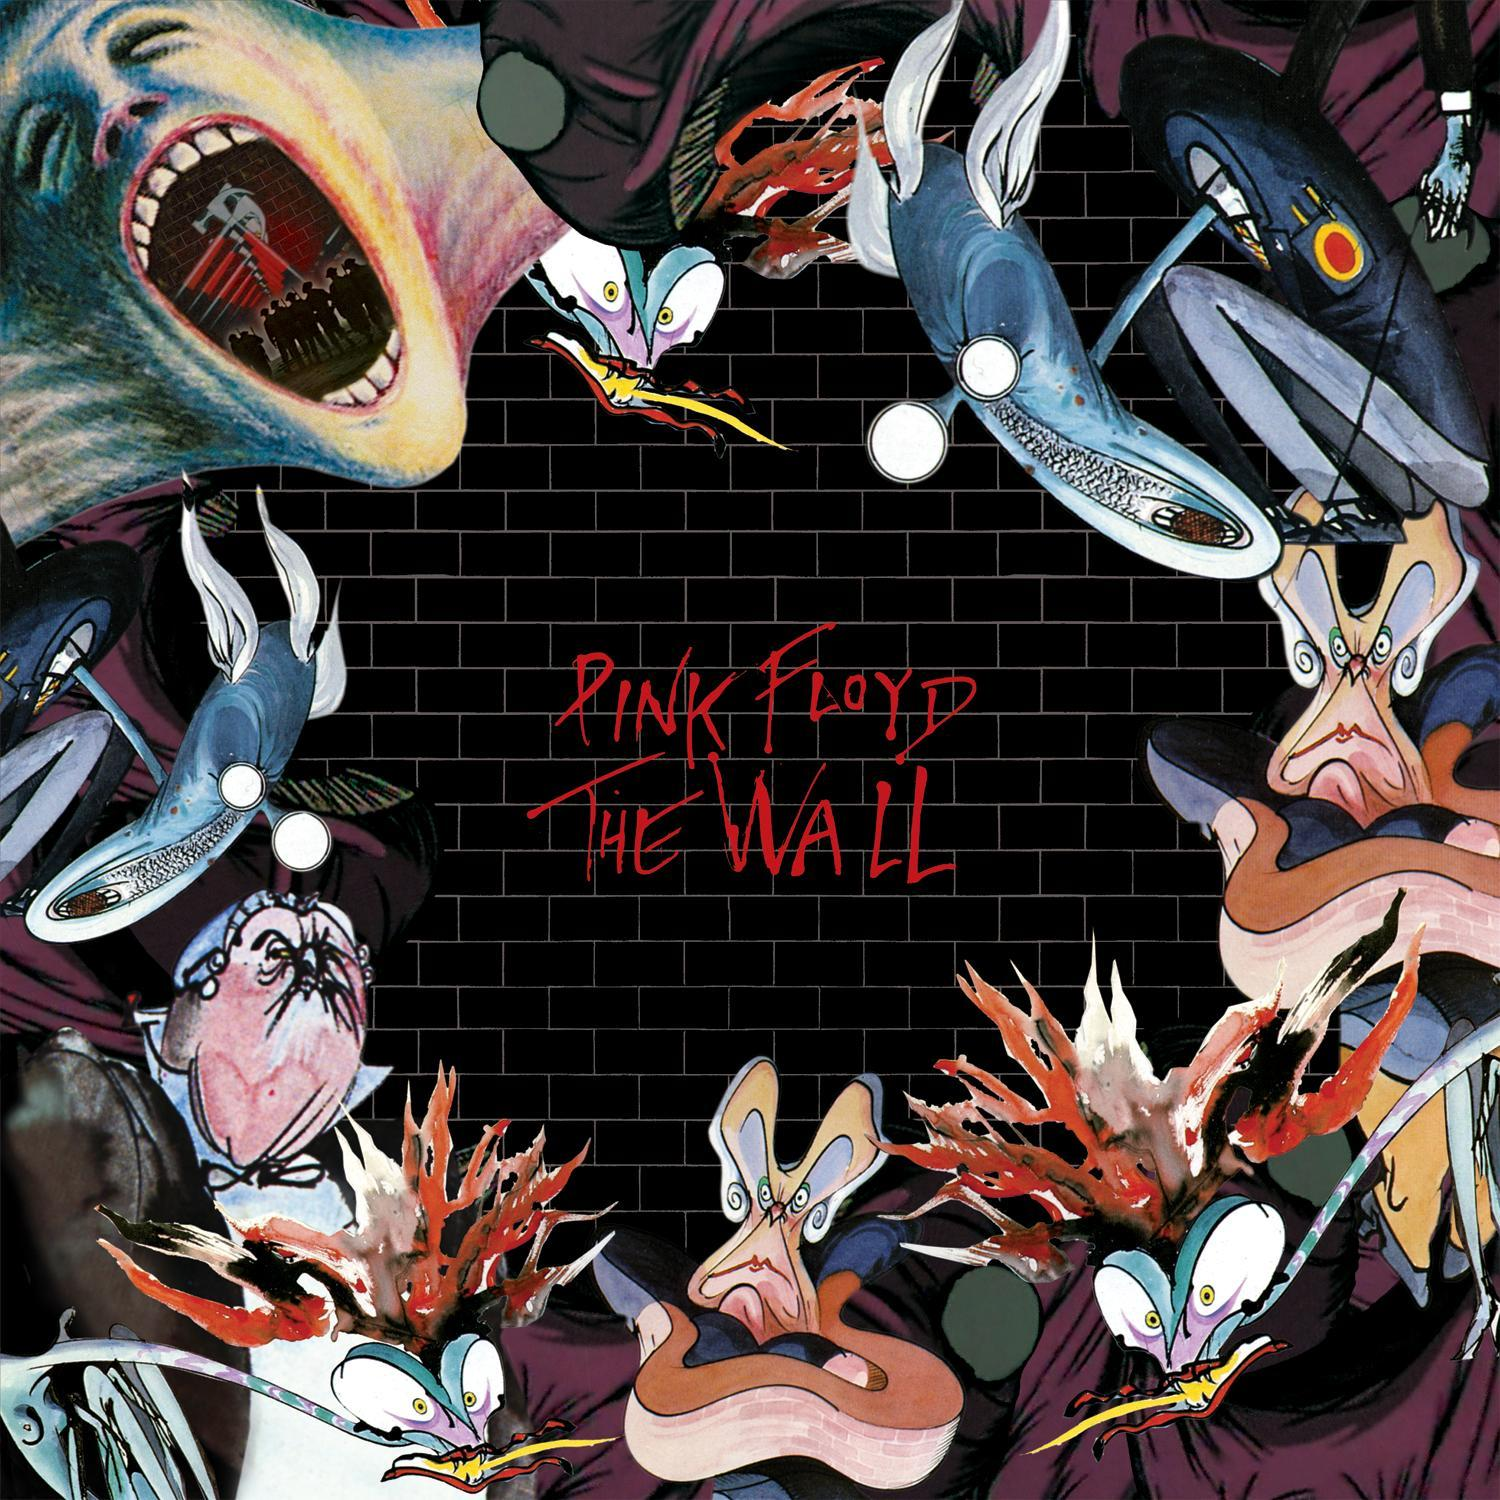 The Wall Pink Floyd: A Website About The Best Music Of The Moment